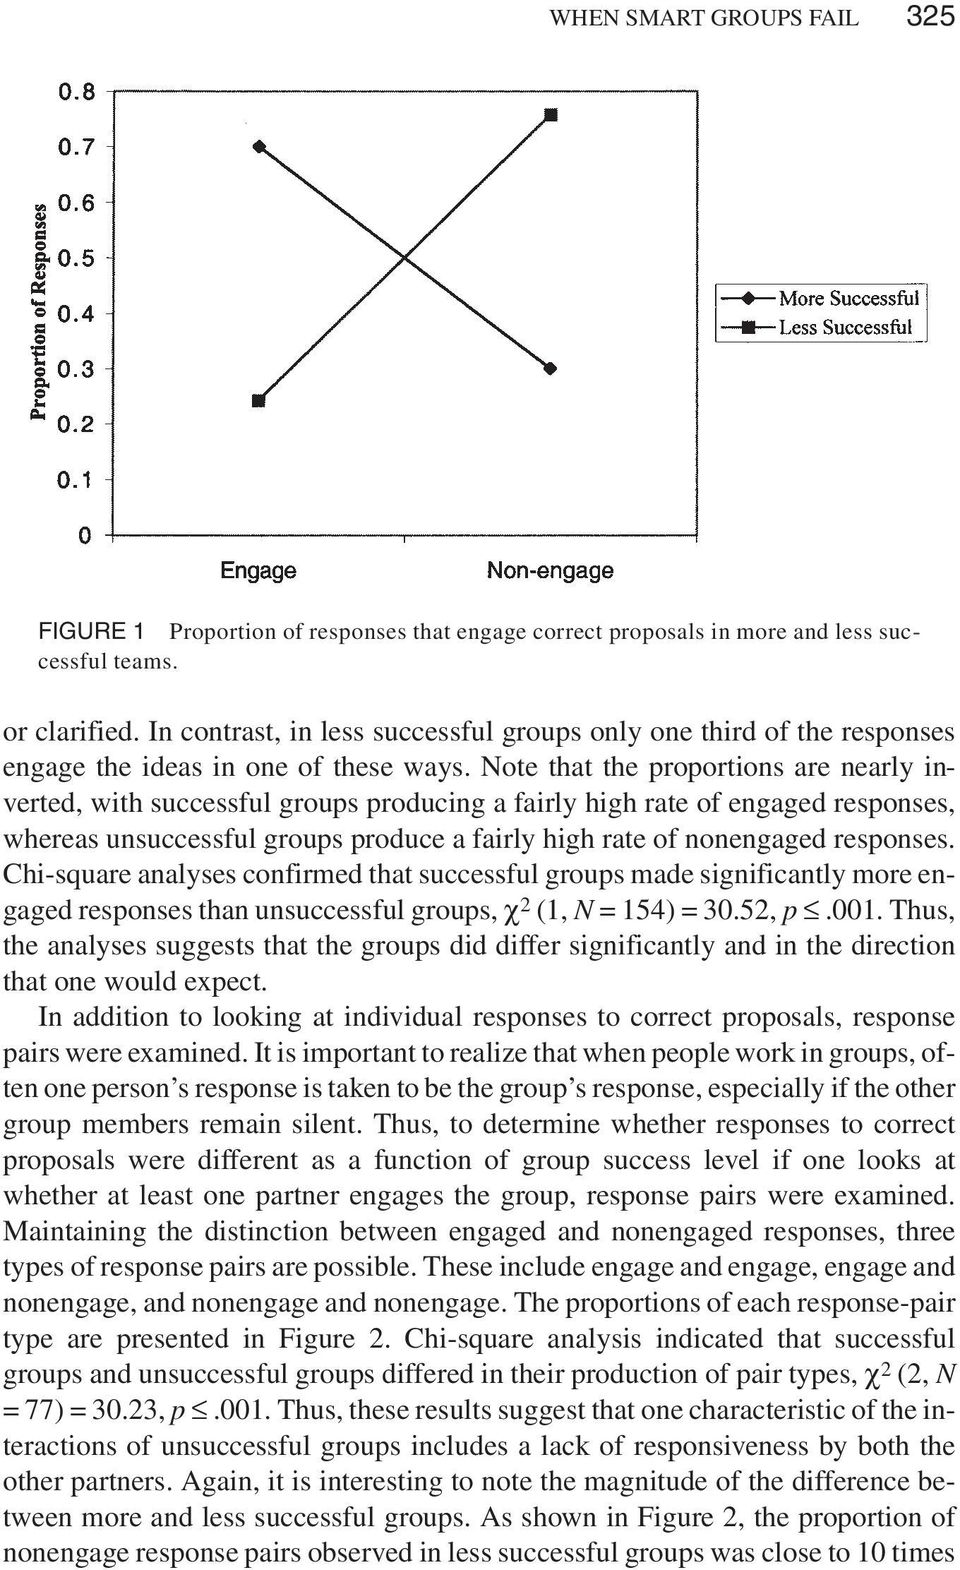 Note that the proportions are nearly inverted, with successful groups producing a fairly high rate of engaged responses, whereas unsuccessful groups produce a fairly high rate of nonengaged responses.